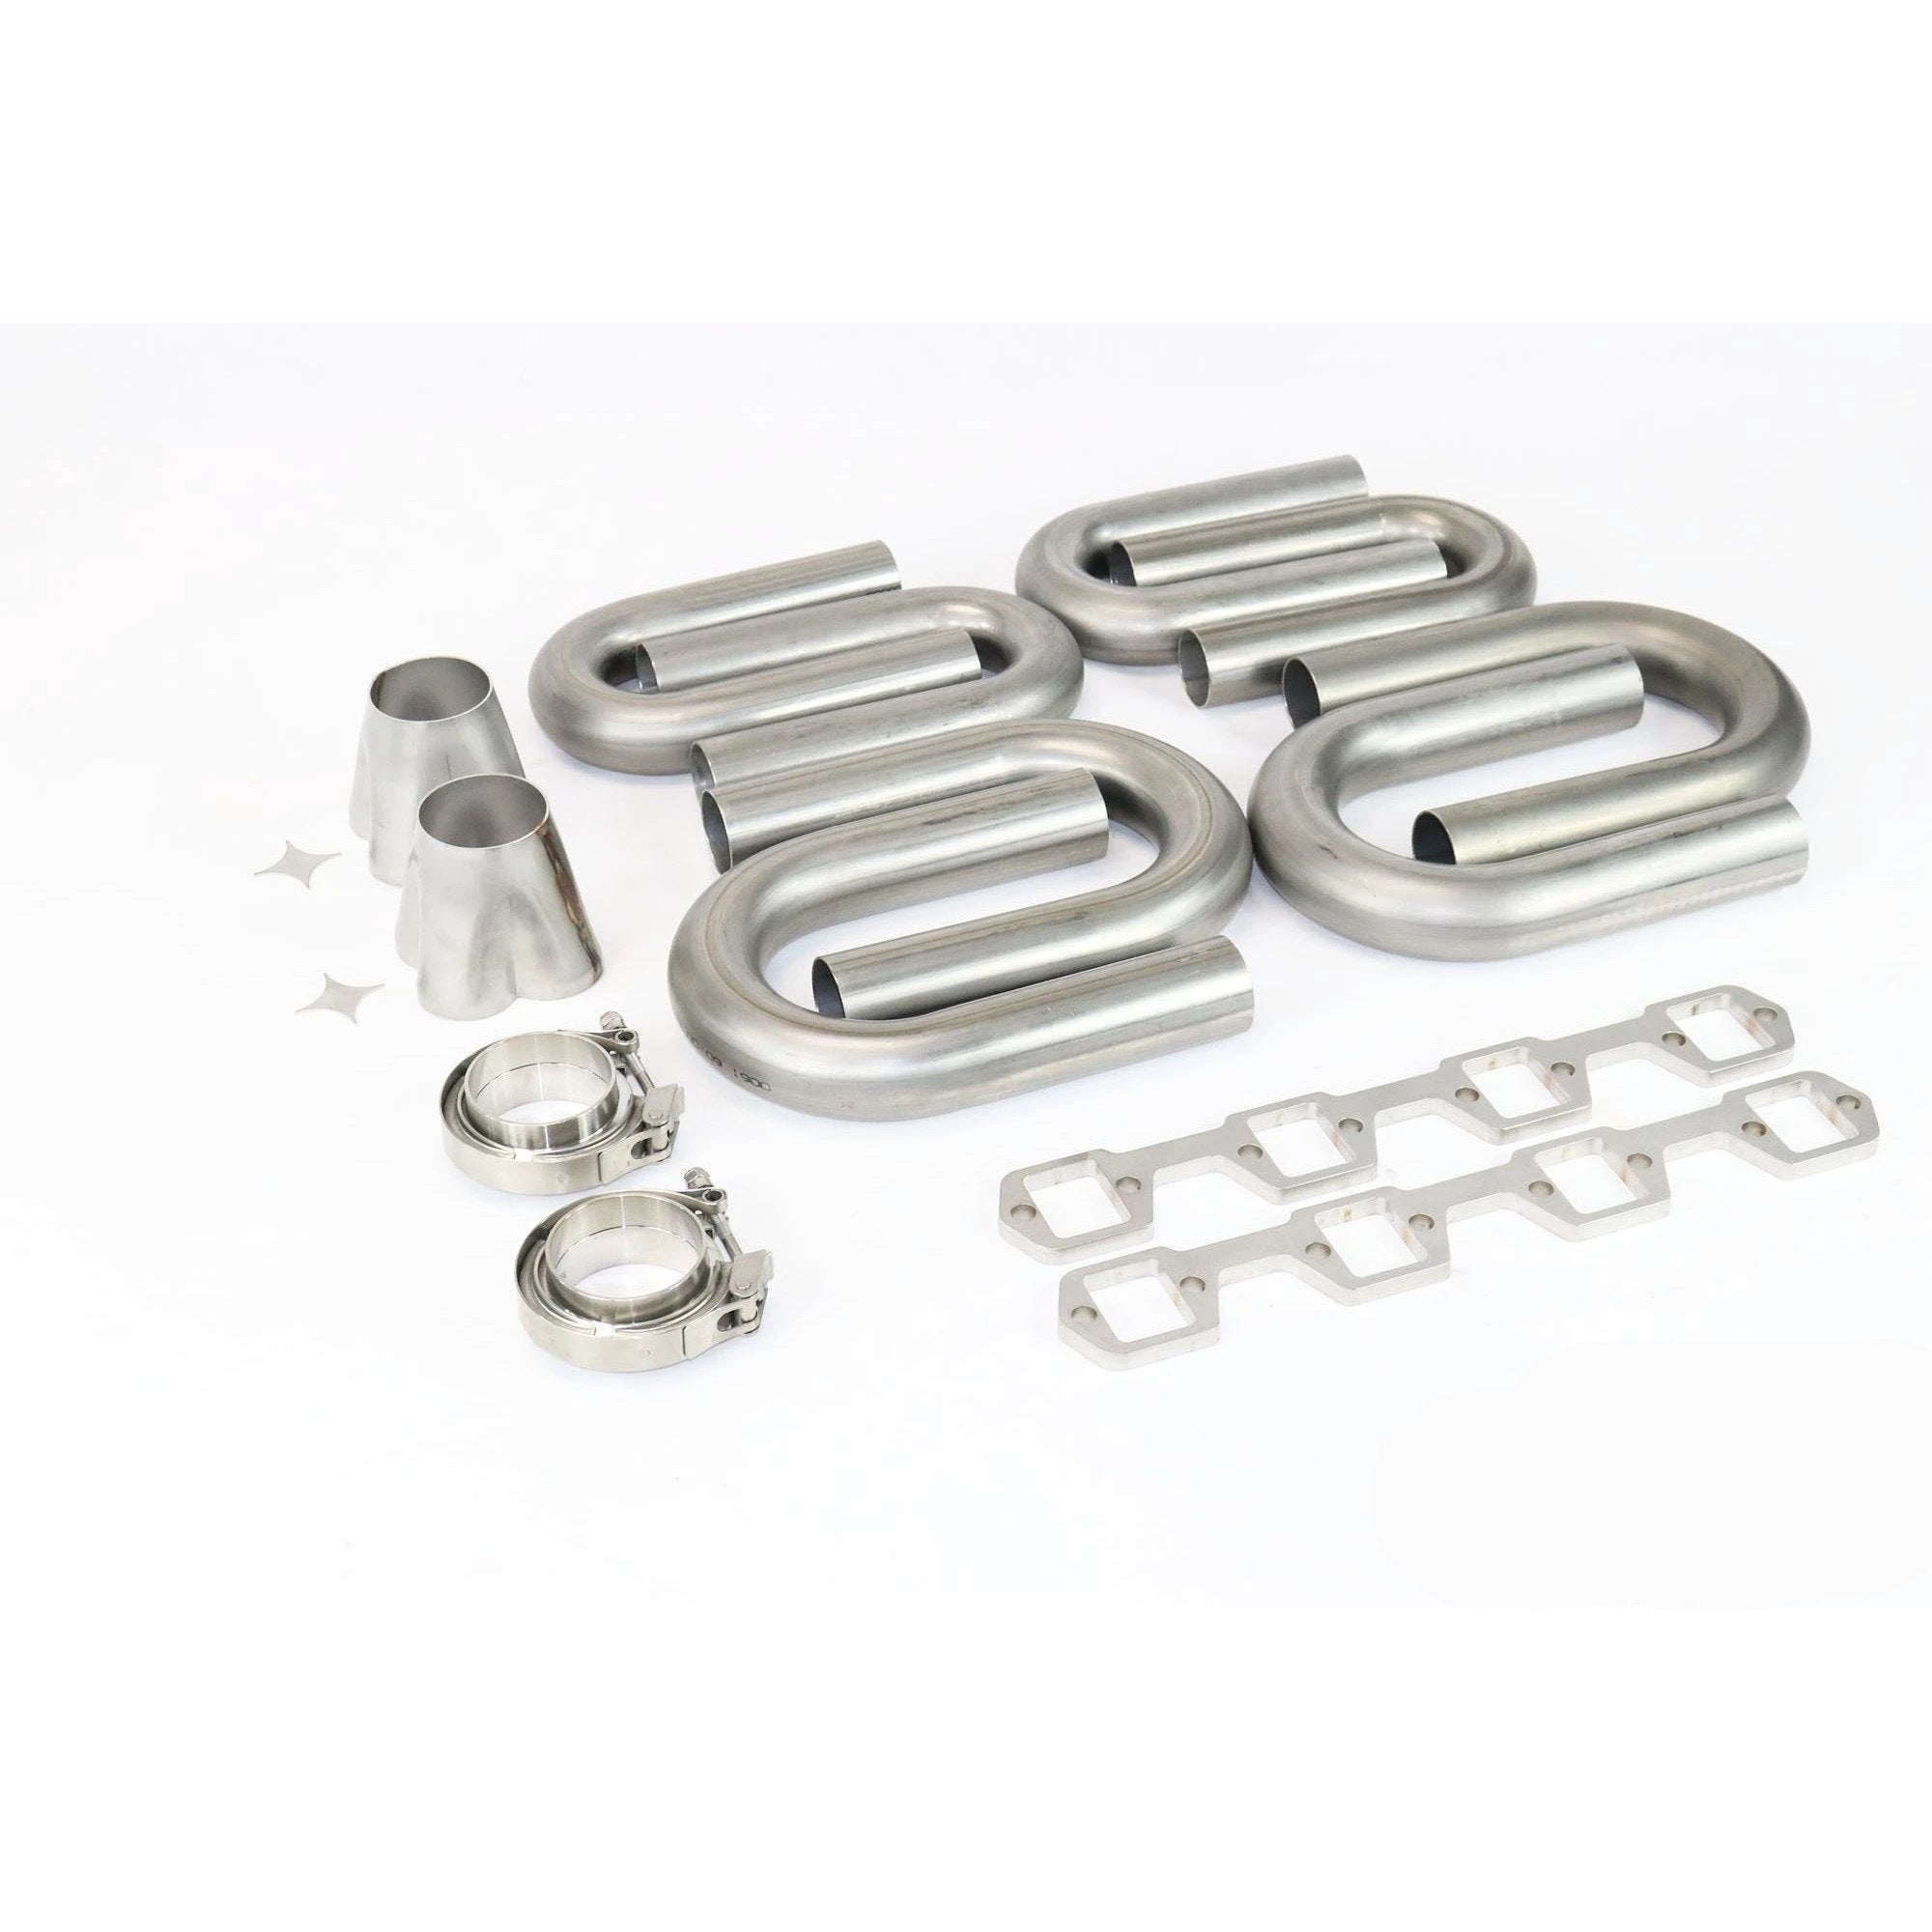 Ford SBF Windsor 304 Stainless Turbo Header Build Kit-Kit-Motion Raceworks